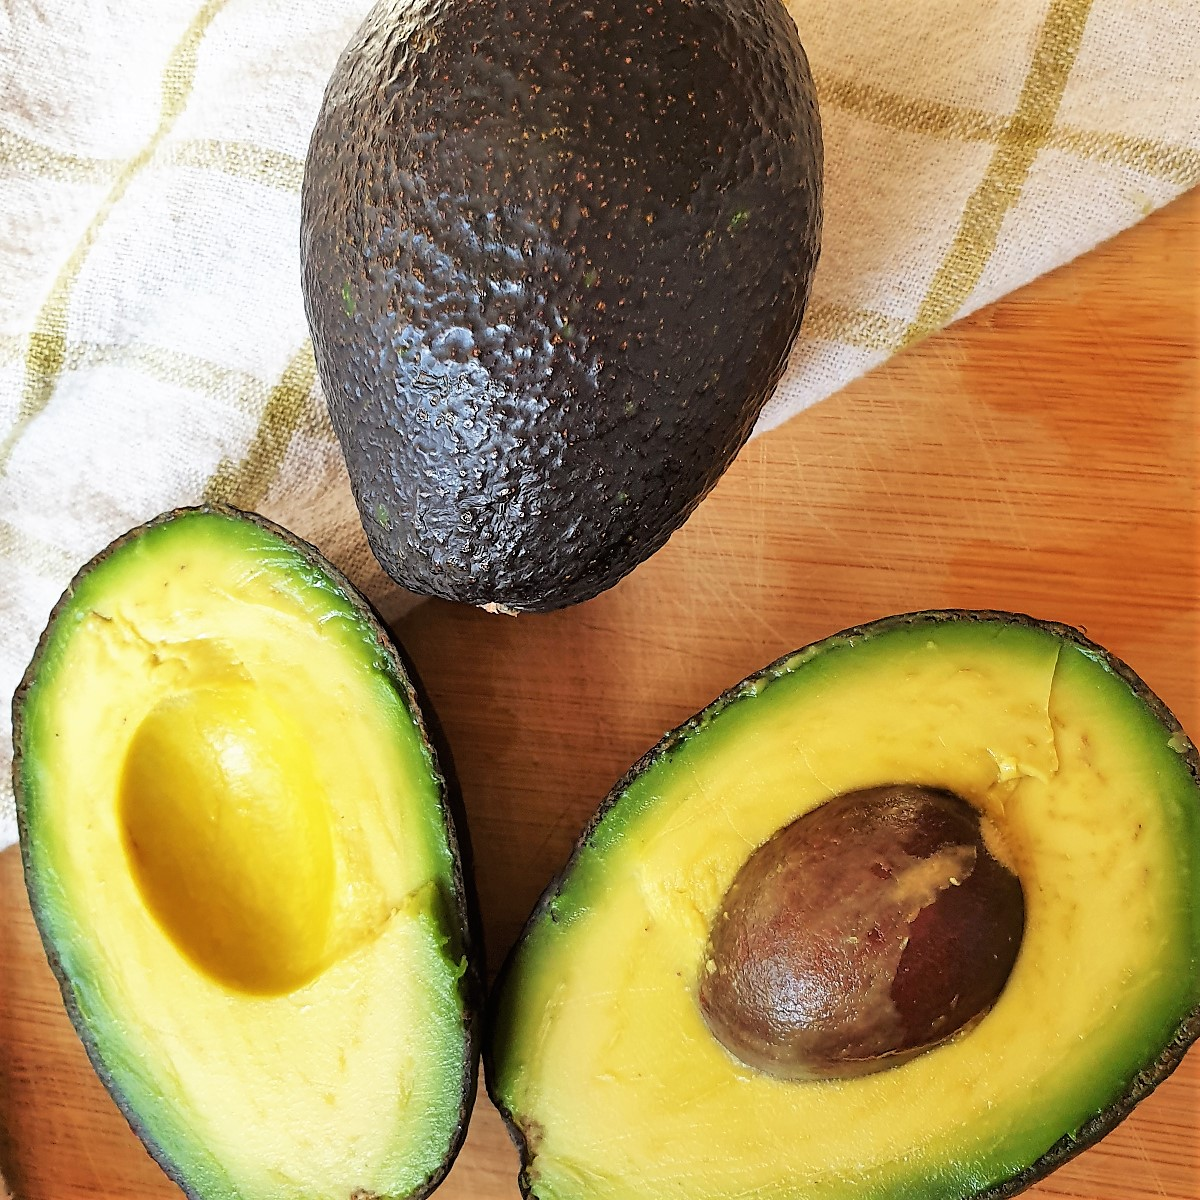 Two avocados - one whole one and one cut in half.